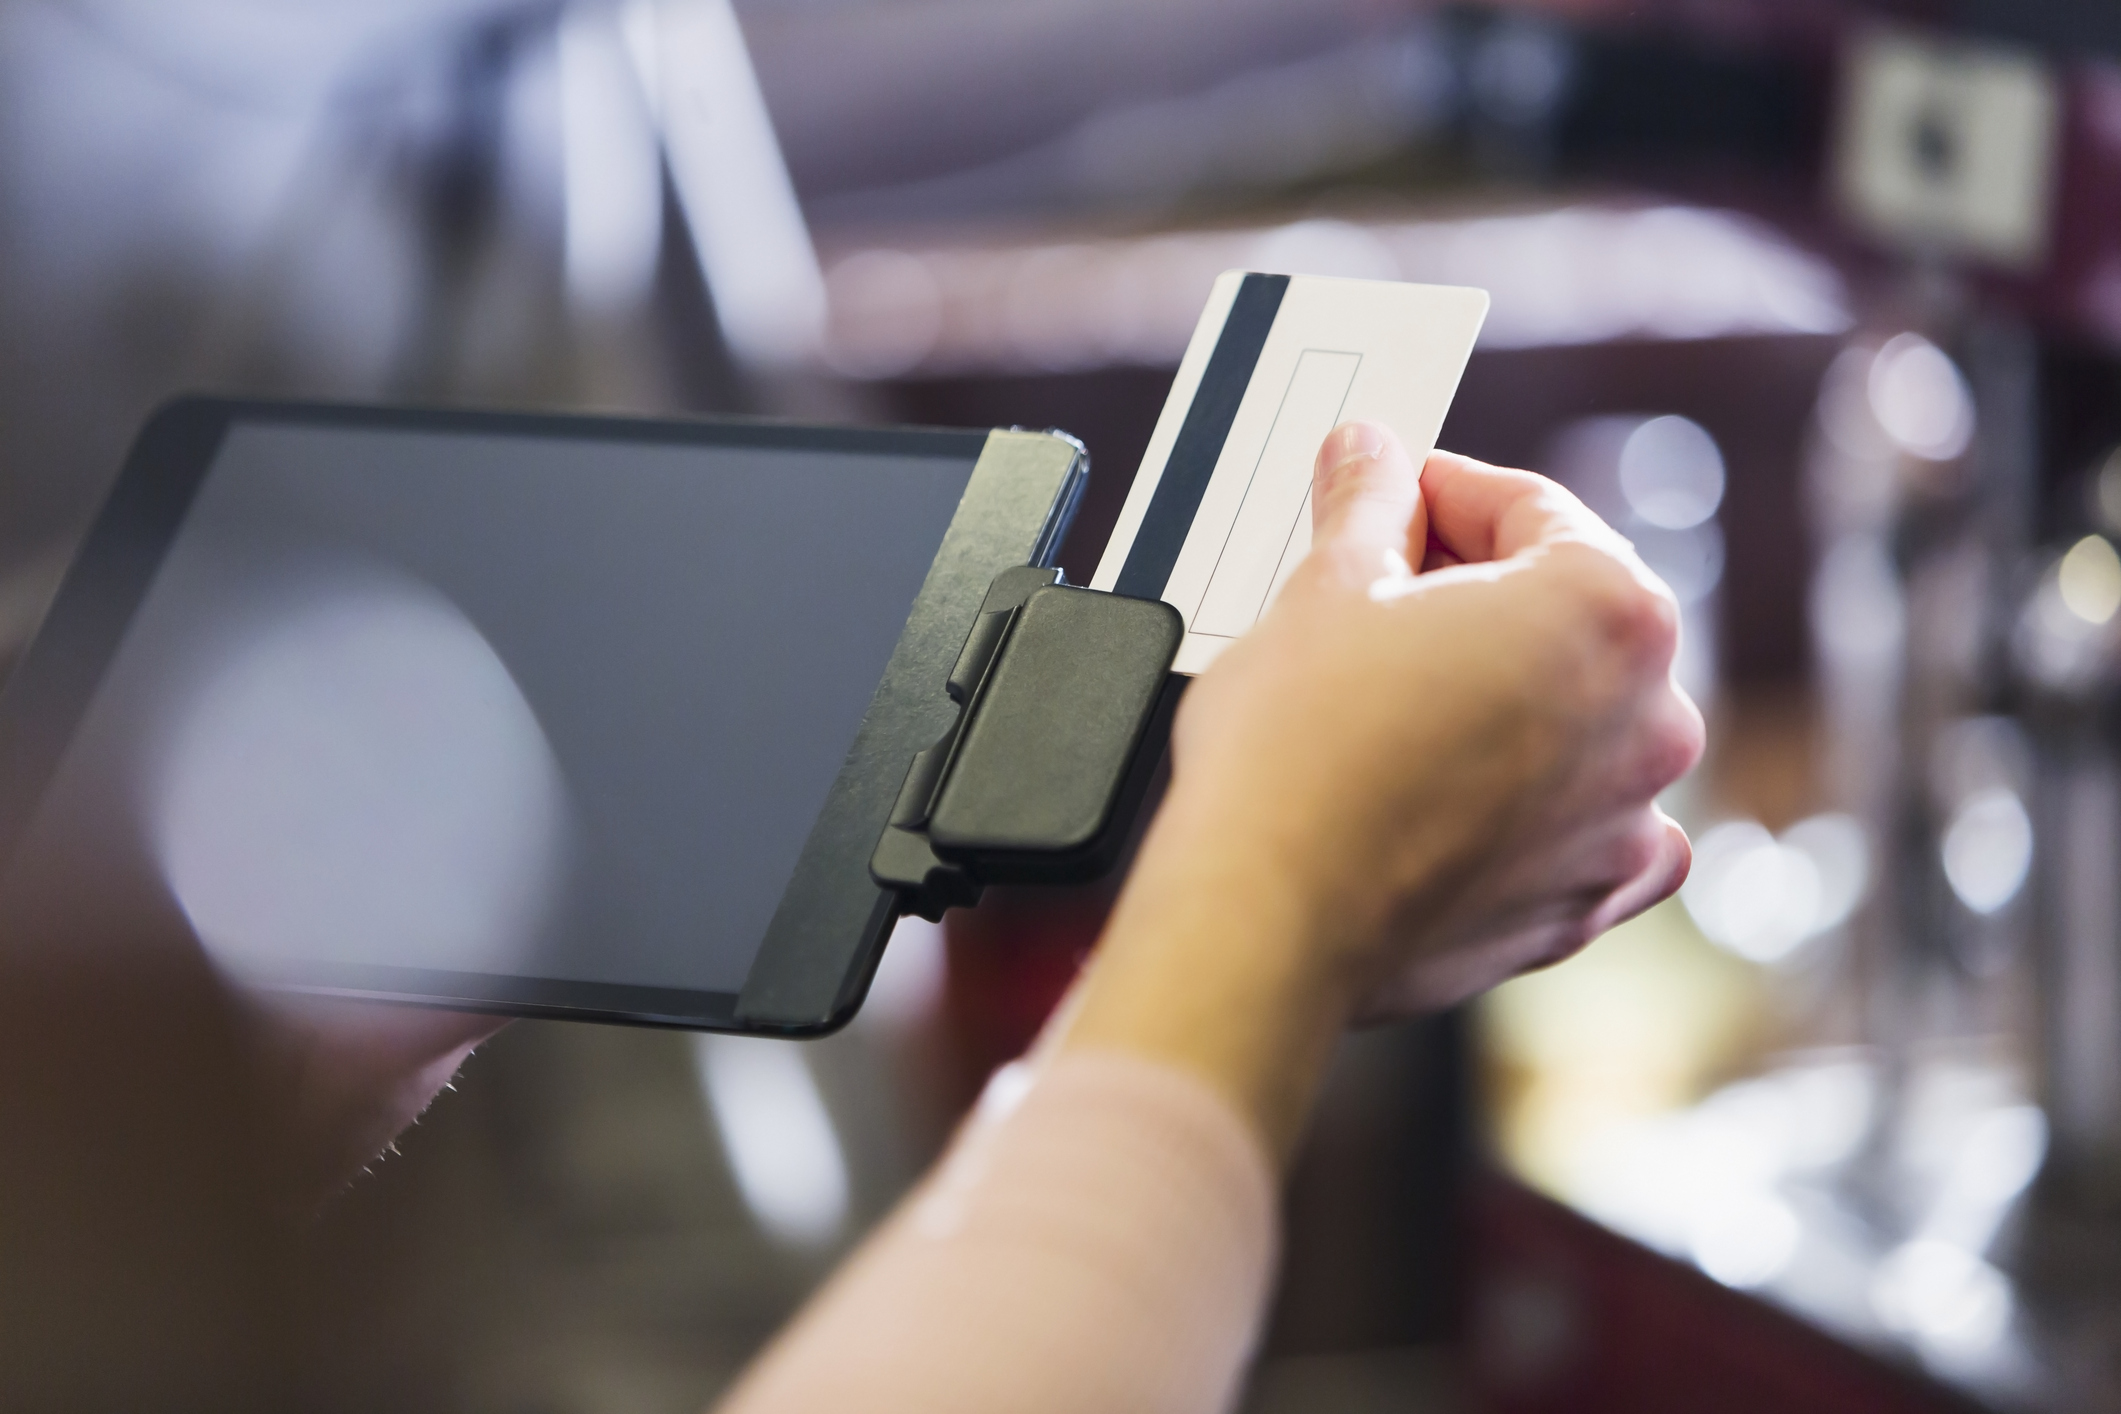 Hand of woman sliding credit card through reader